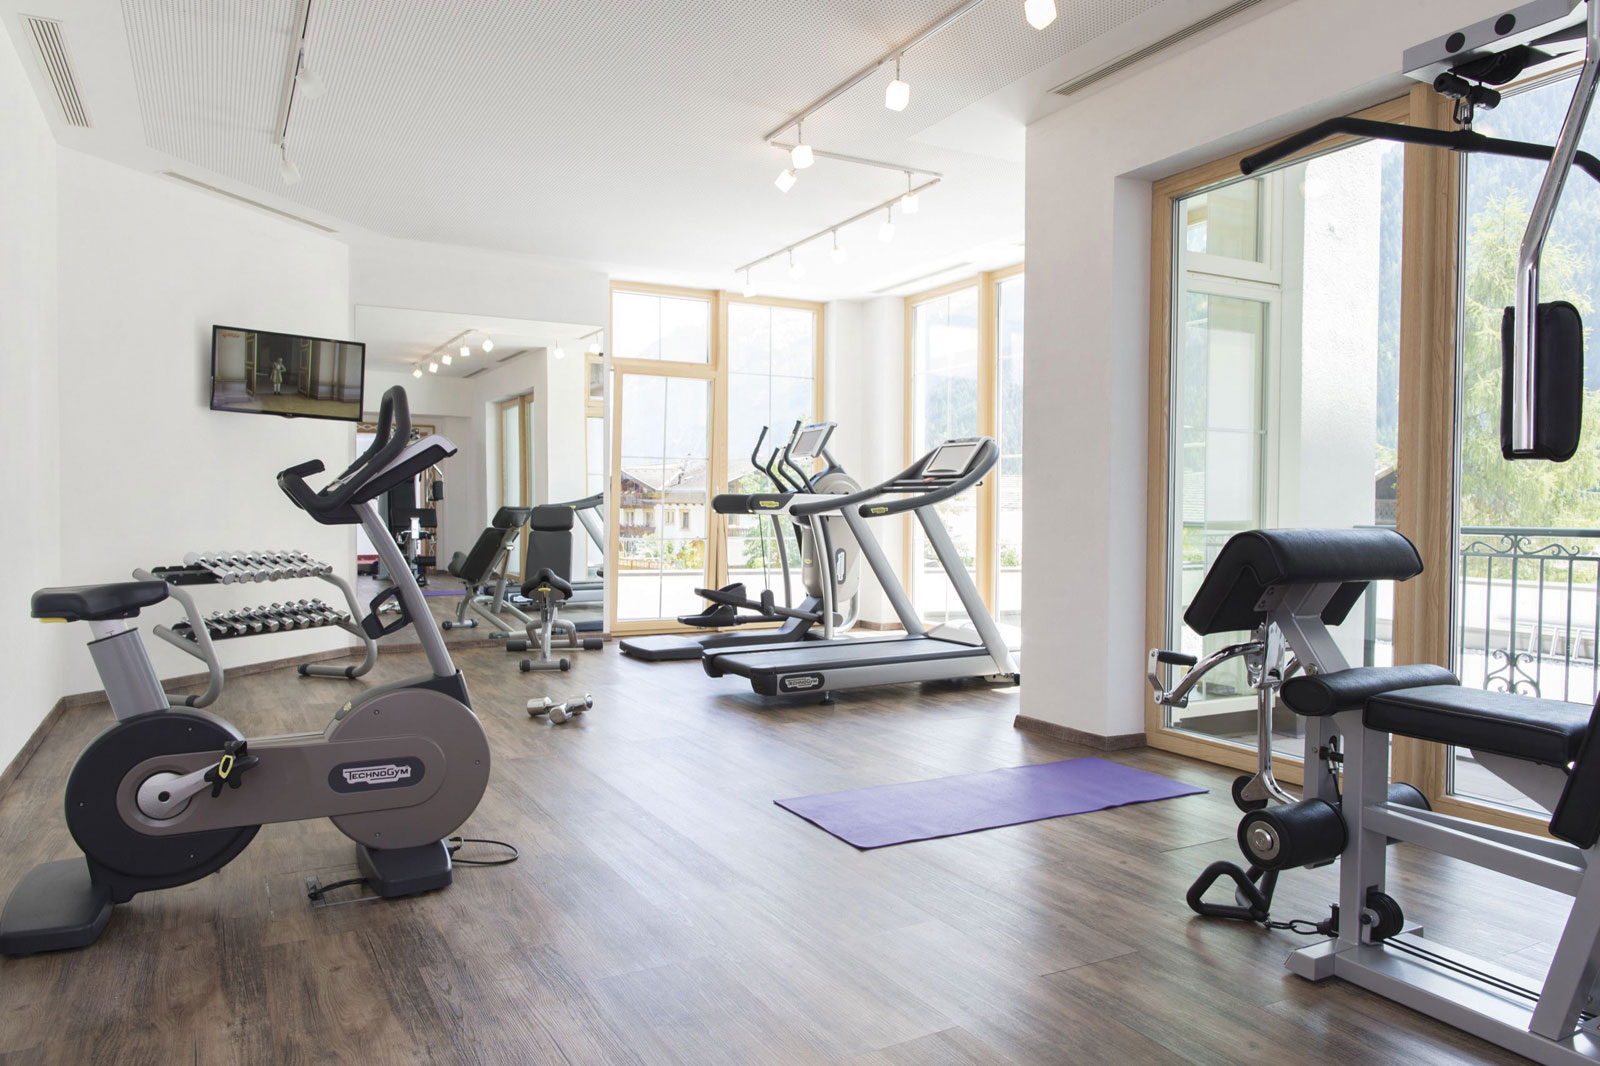 Keep fit - Fitness complex at the Hotel Kindl